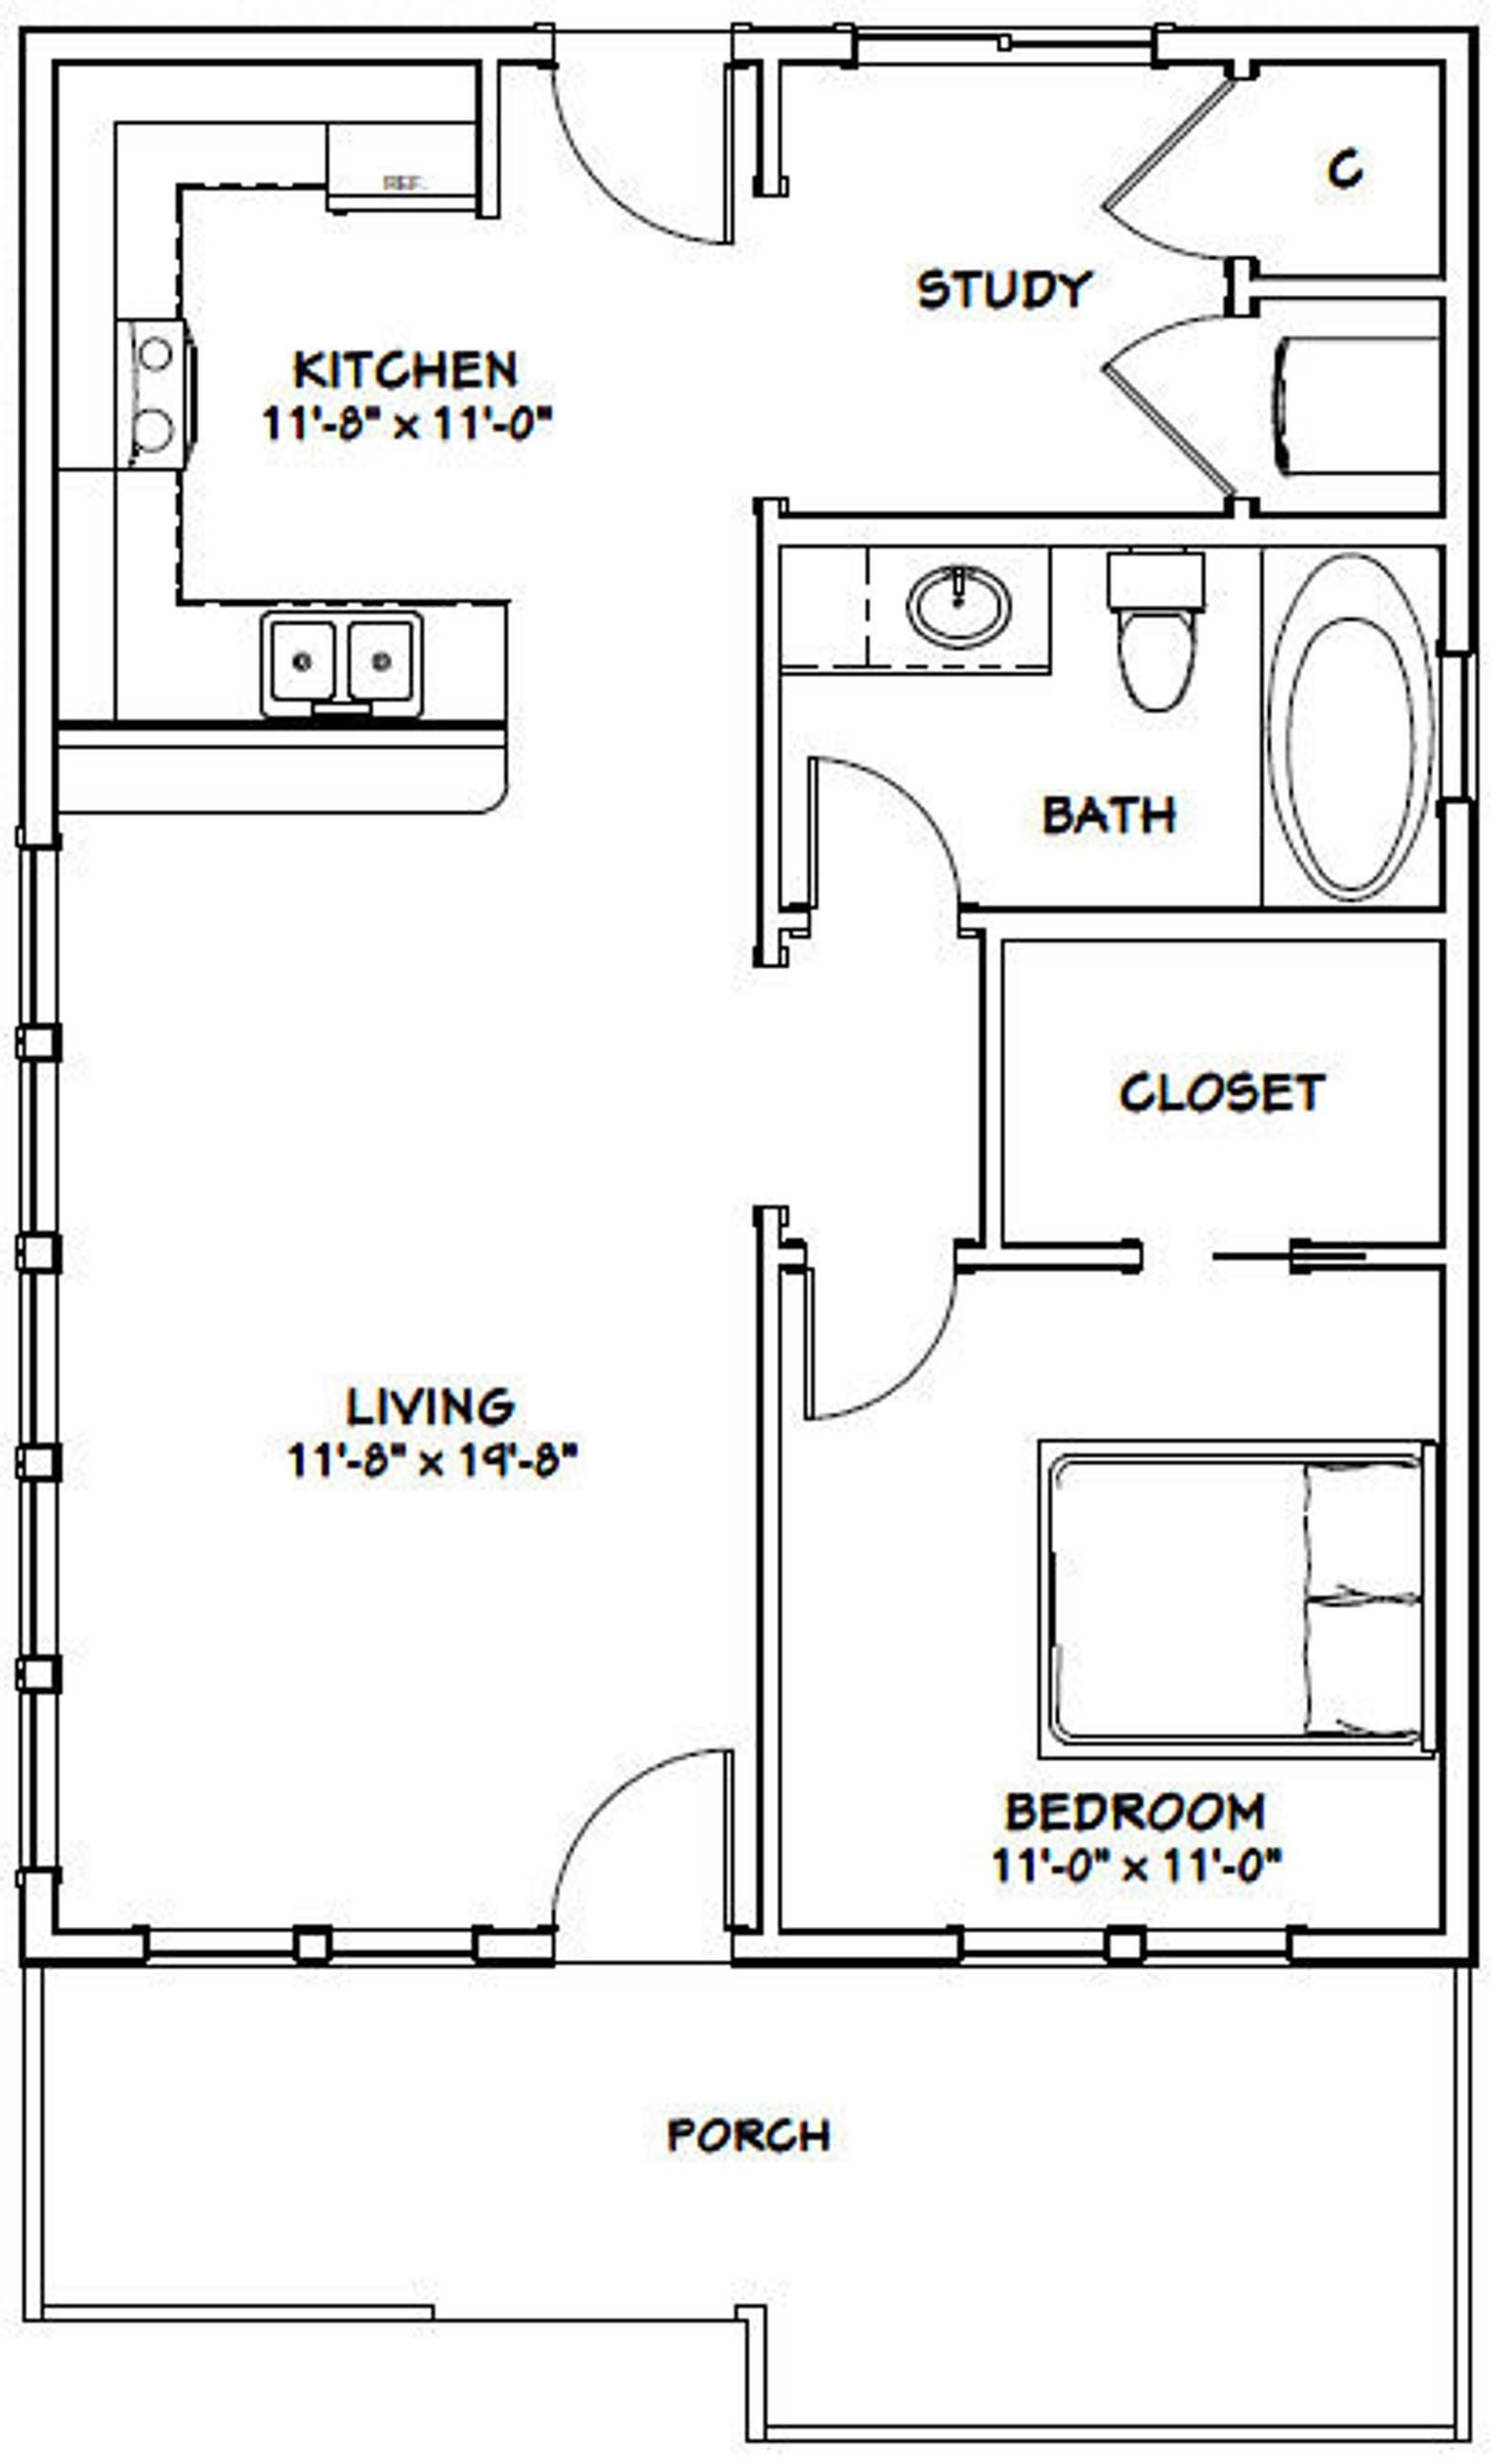 24x32 House 1 Bedroom 1 Bath 768 Sq Ft Pdf Floor Plan Instant Download Model 1 1 Bedroom House Plans One Bedroom House Tiny House Floor Plans